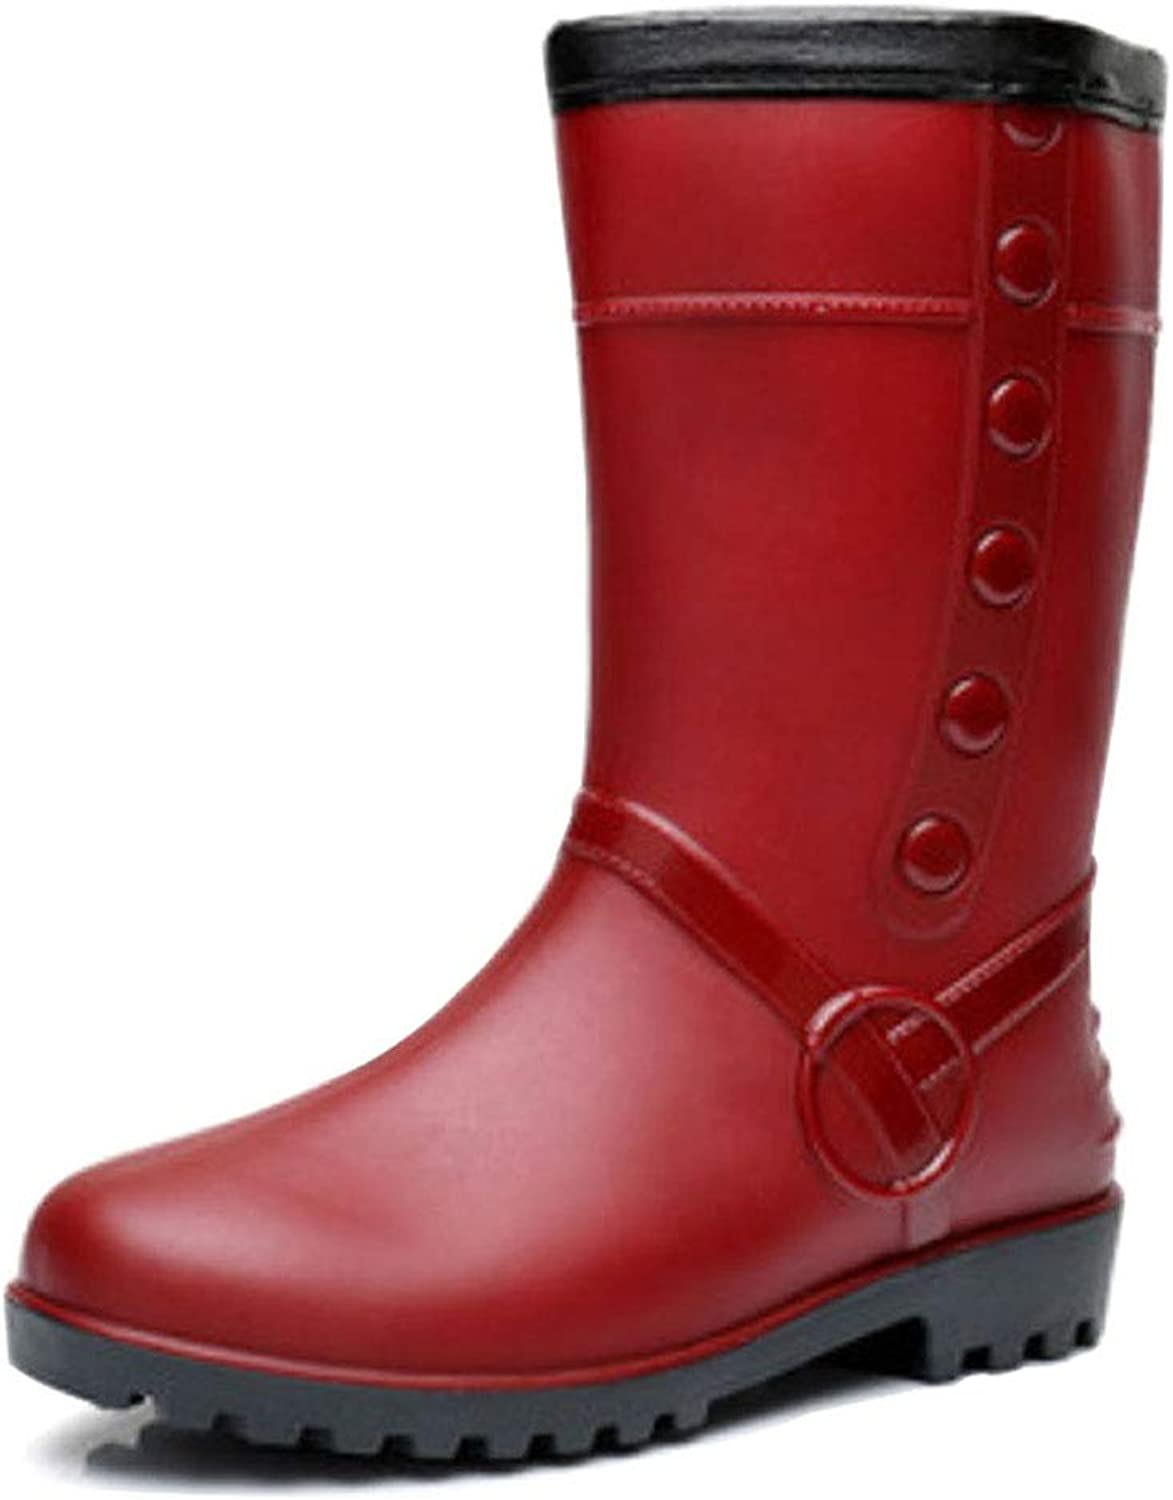 Uirend Wellingtons Boots for Women - Mid Calf Waterproof Warm Fur Lined Durable Wellies Rain shoes Predective Work Utility Footwear Easy to Clean Wide Fit